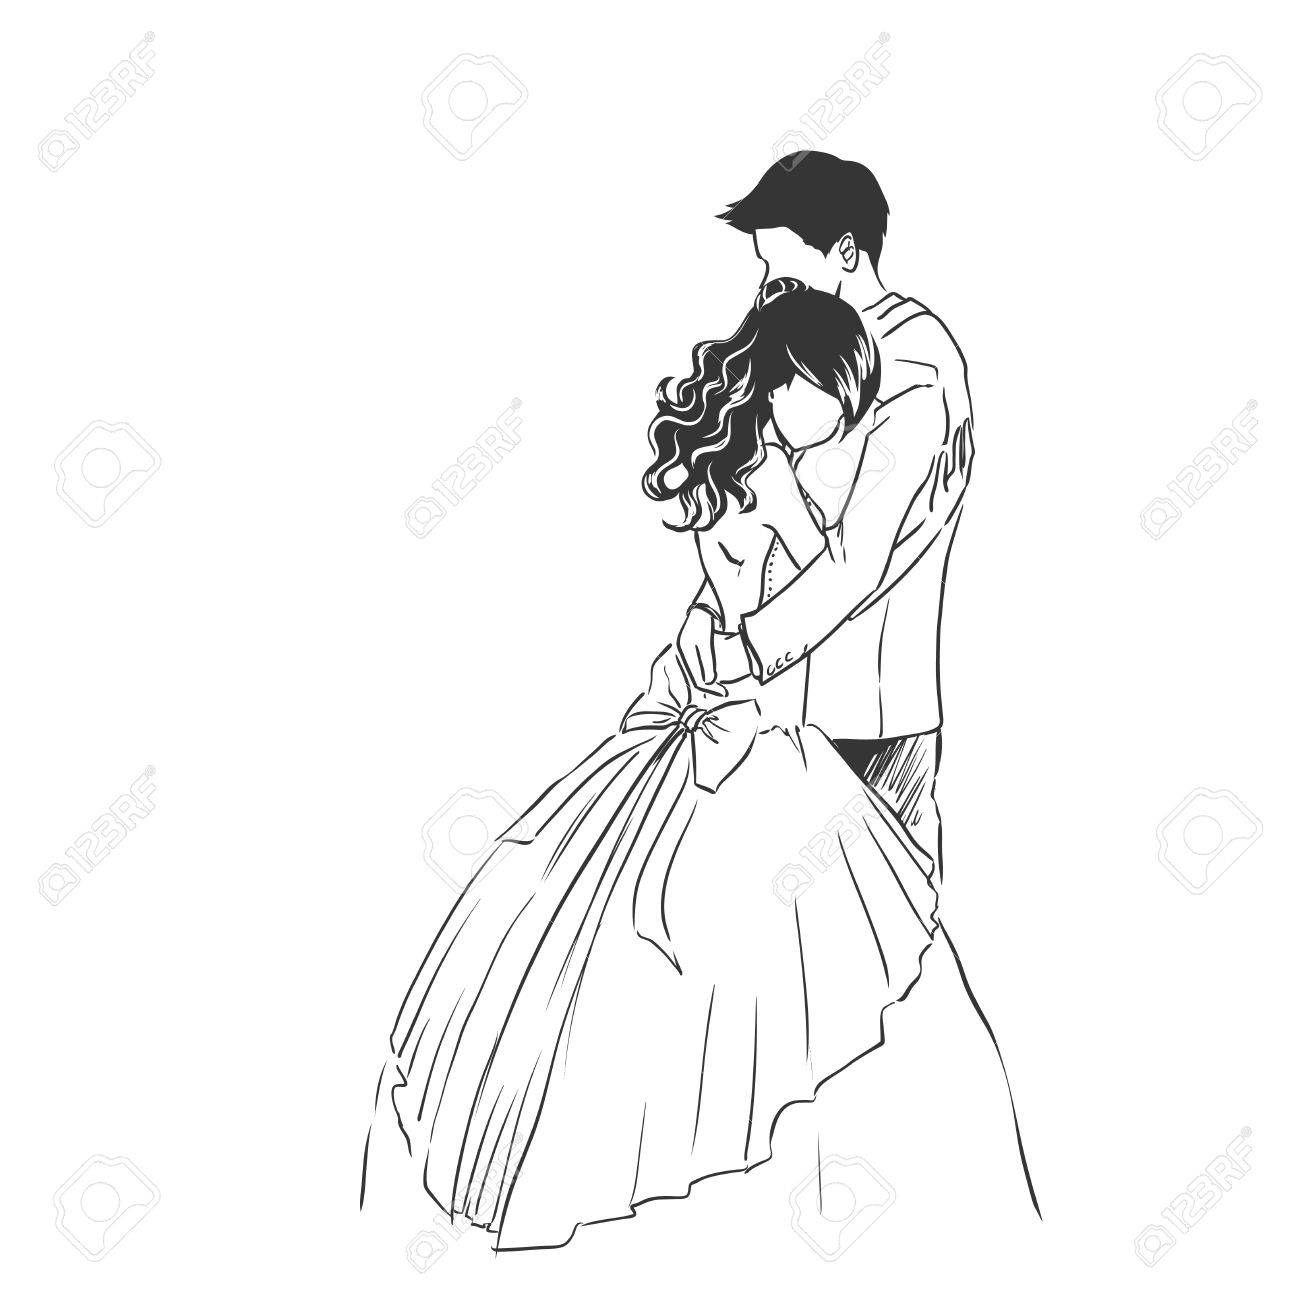 1300x1300 Art Sketch Of Young Bride And Handsome Groom. Wedding Invitation